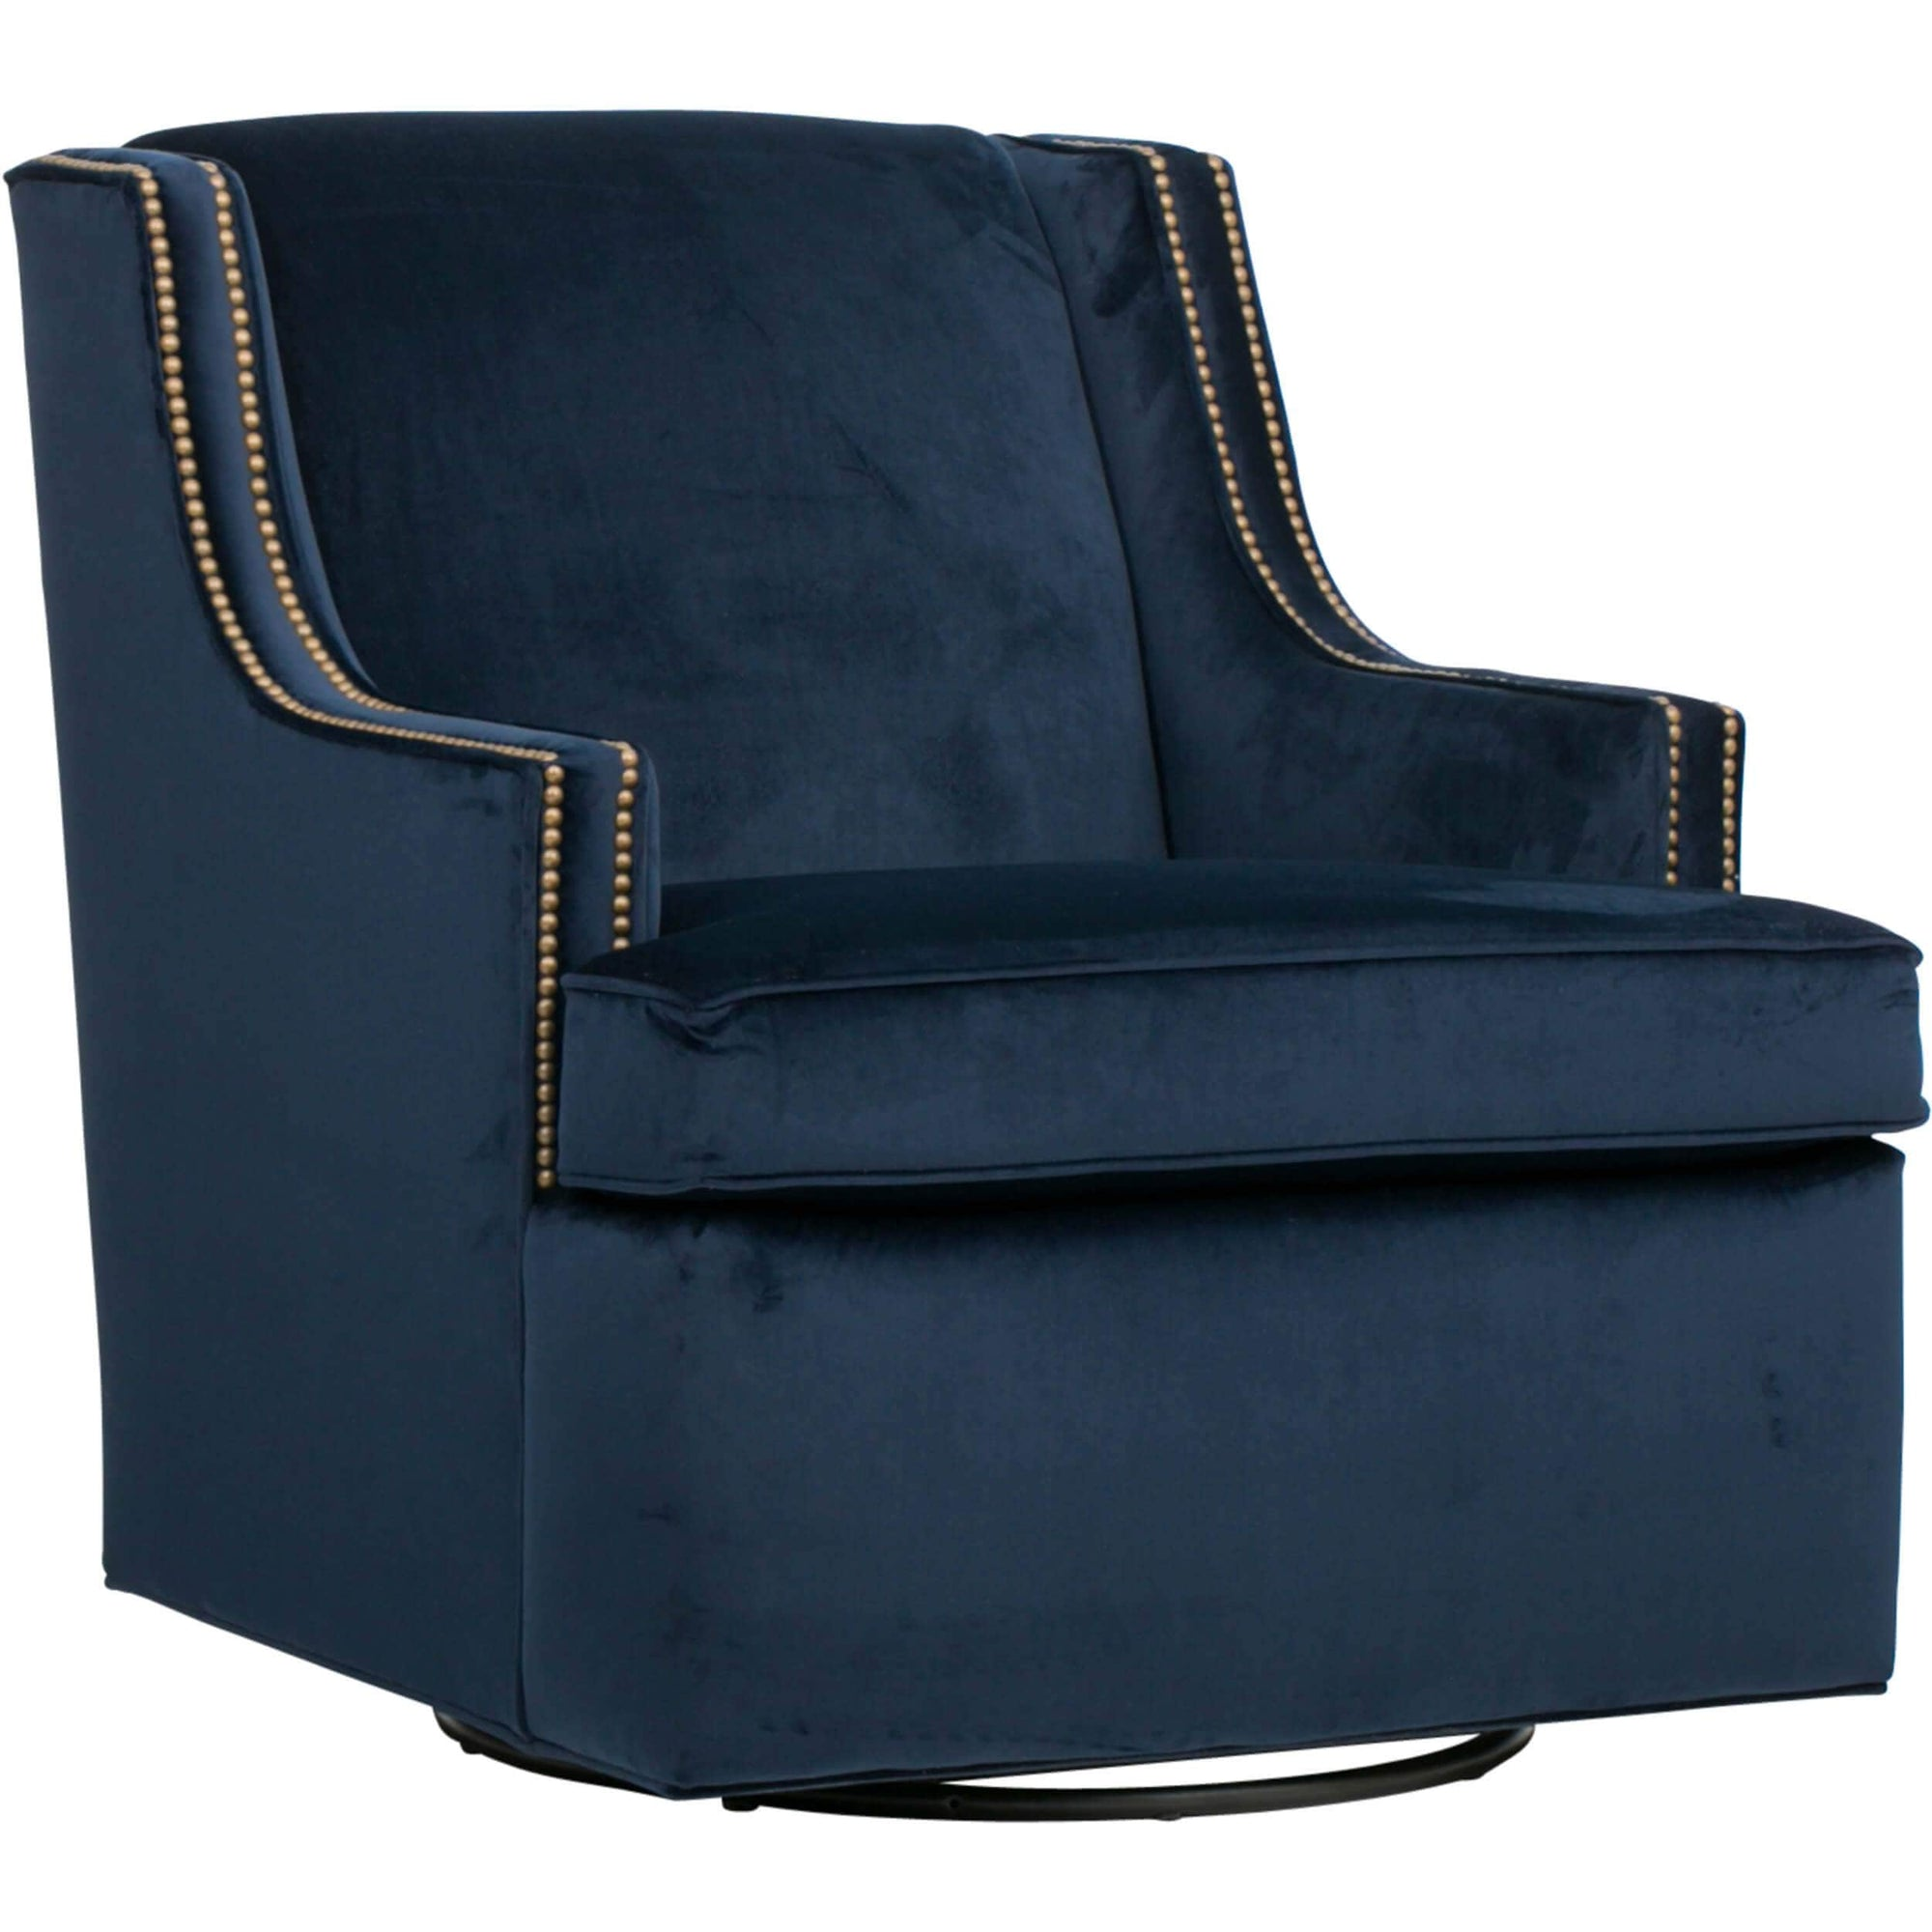 Wondrous Beckley Swivel Chair Navy High Fashion Home Theyellowbook Wood Chair Design Ideas Theyellowbookinfo